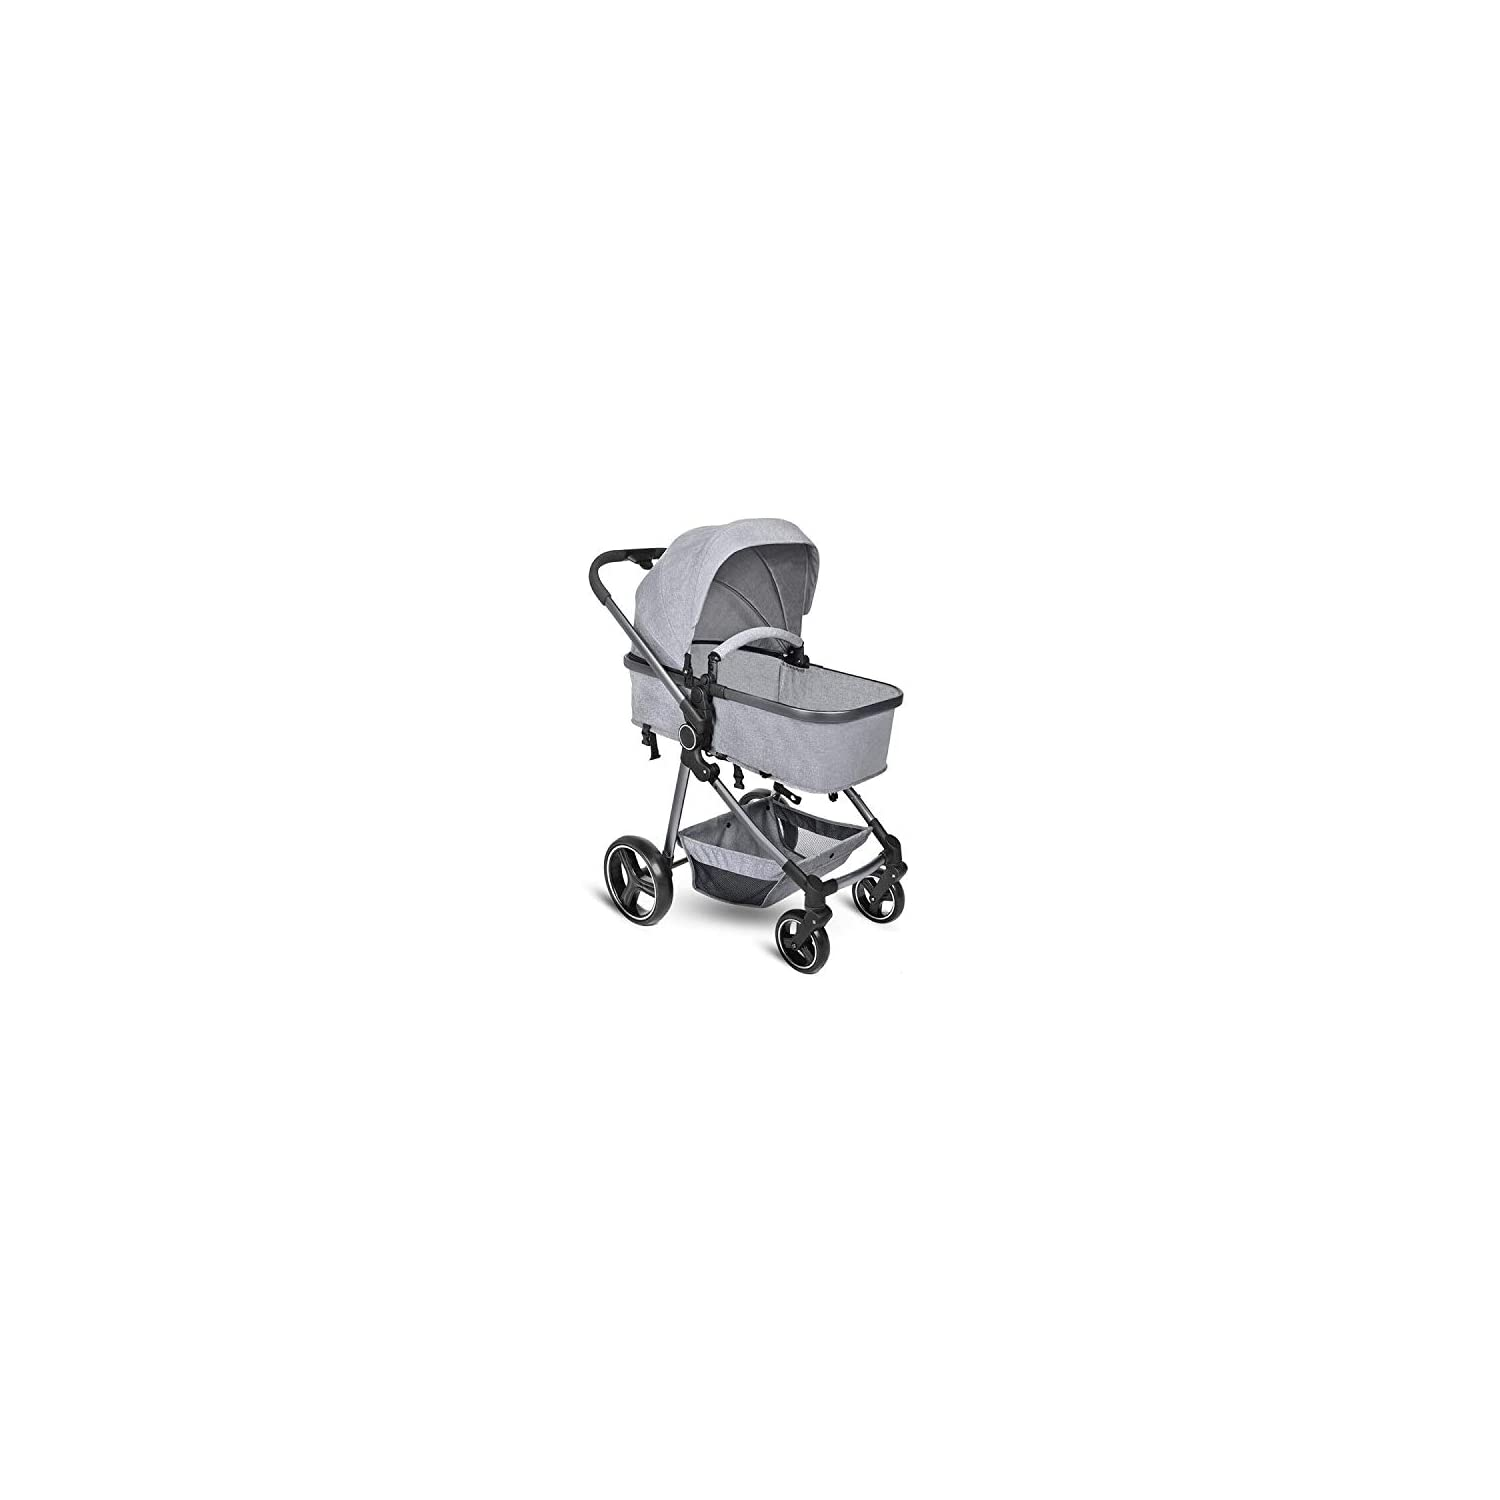 B BAIJIAWEI Convertible Stroller Bassinet – Baby Bassinet Stroller – Newborn Carriage Stroller – Lightweight Reclining Stroller with Adjustable Canopy, Reversible Seat, Lockable Rear Wheels